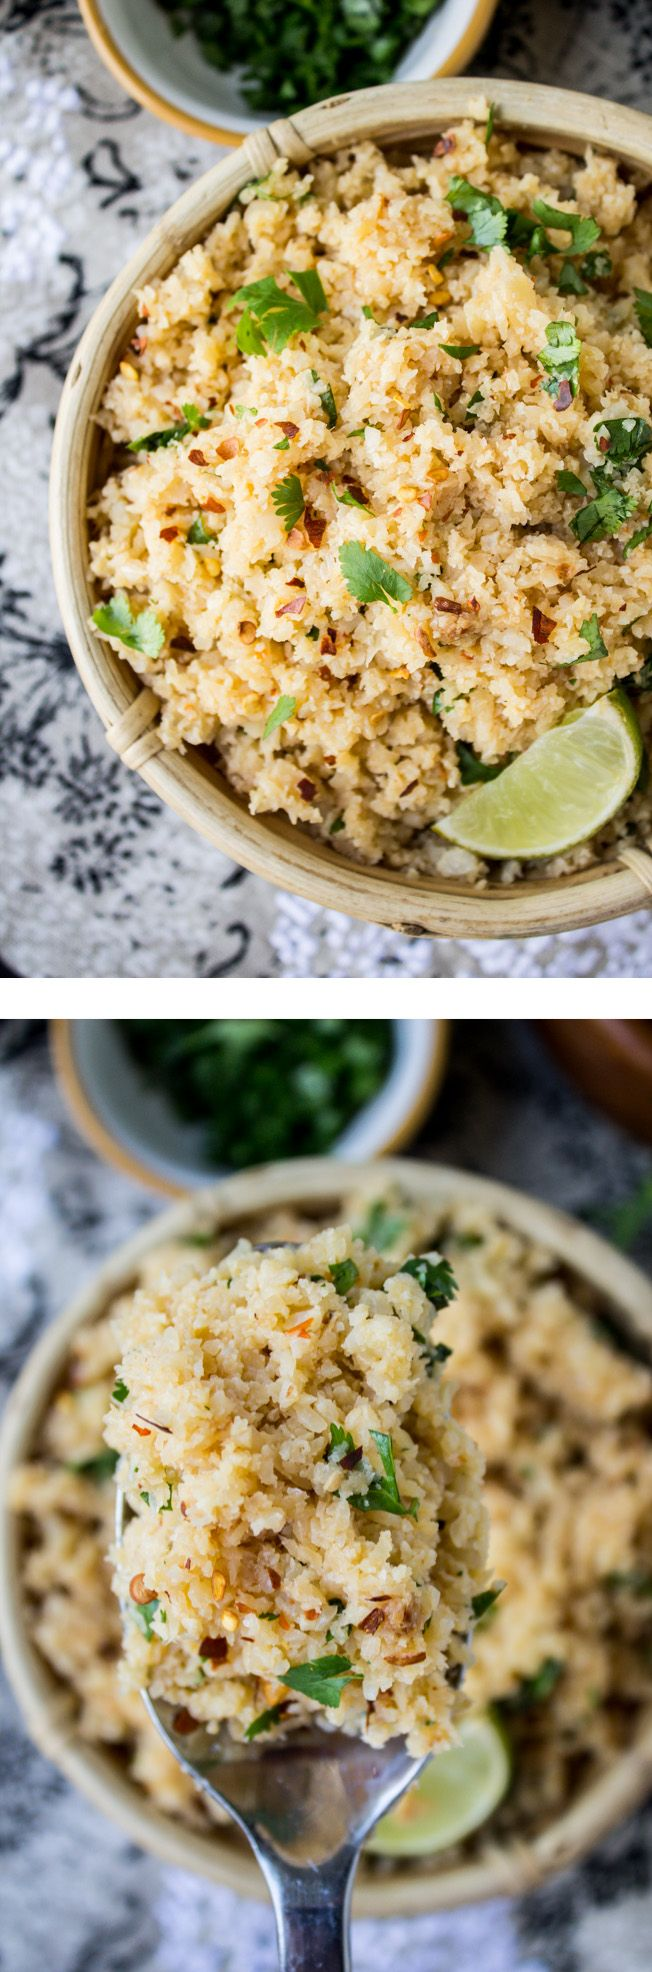 An Asian twist on cauliflower rice, which is not actually rice, but is a delicious sub if you are going low-carb.